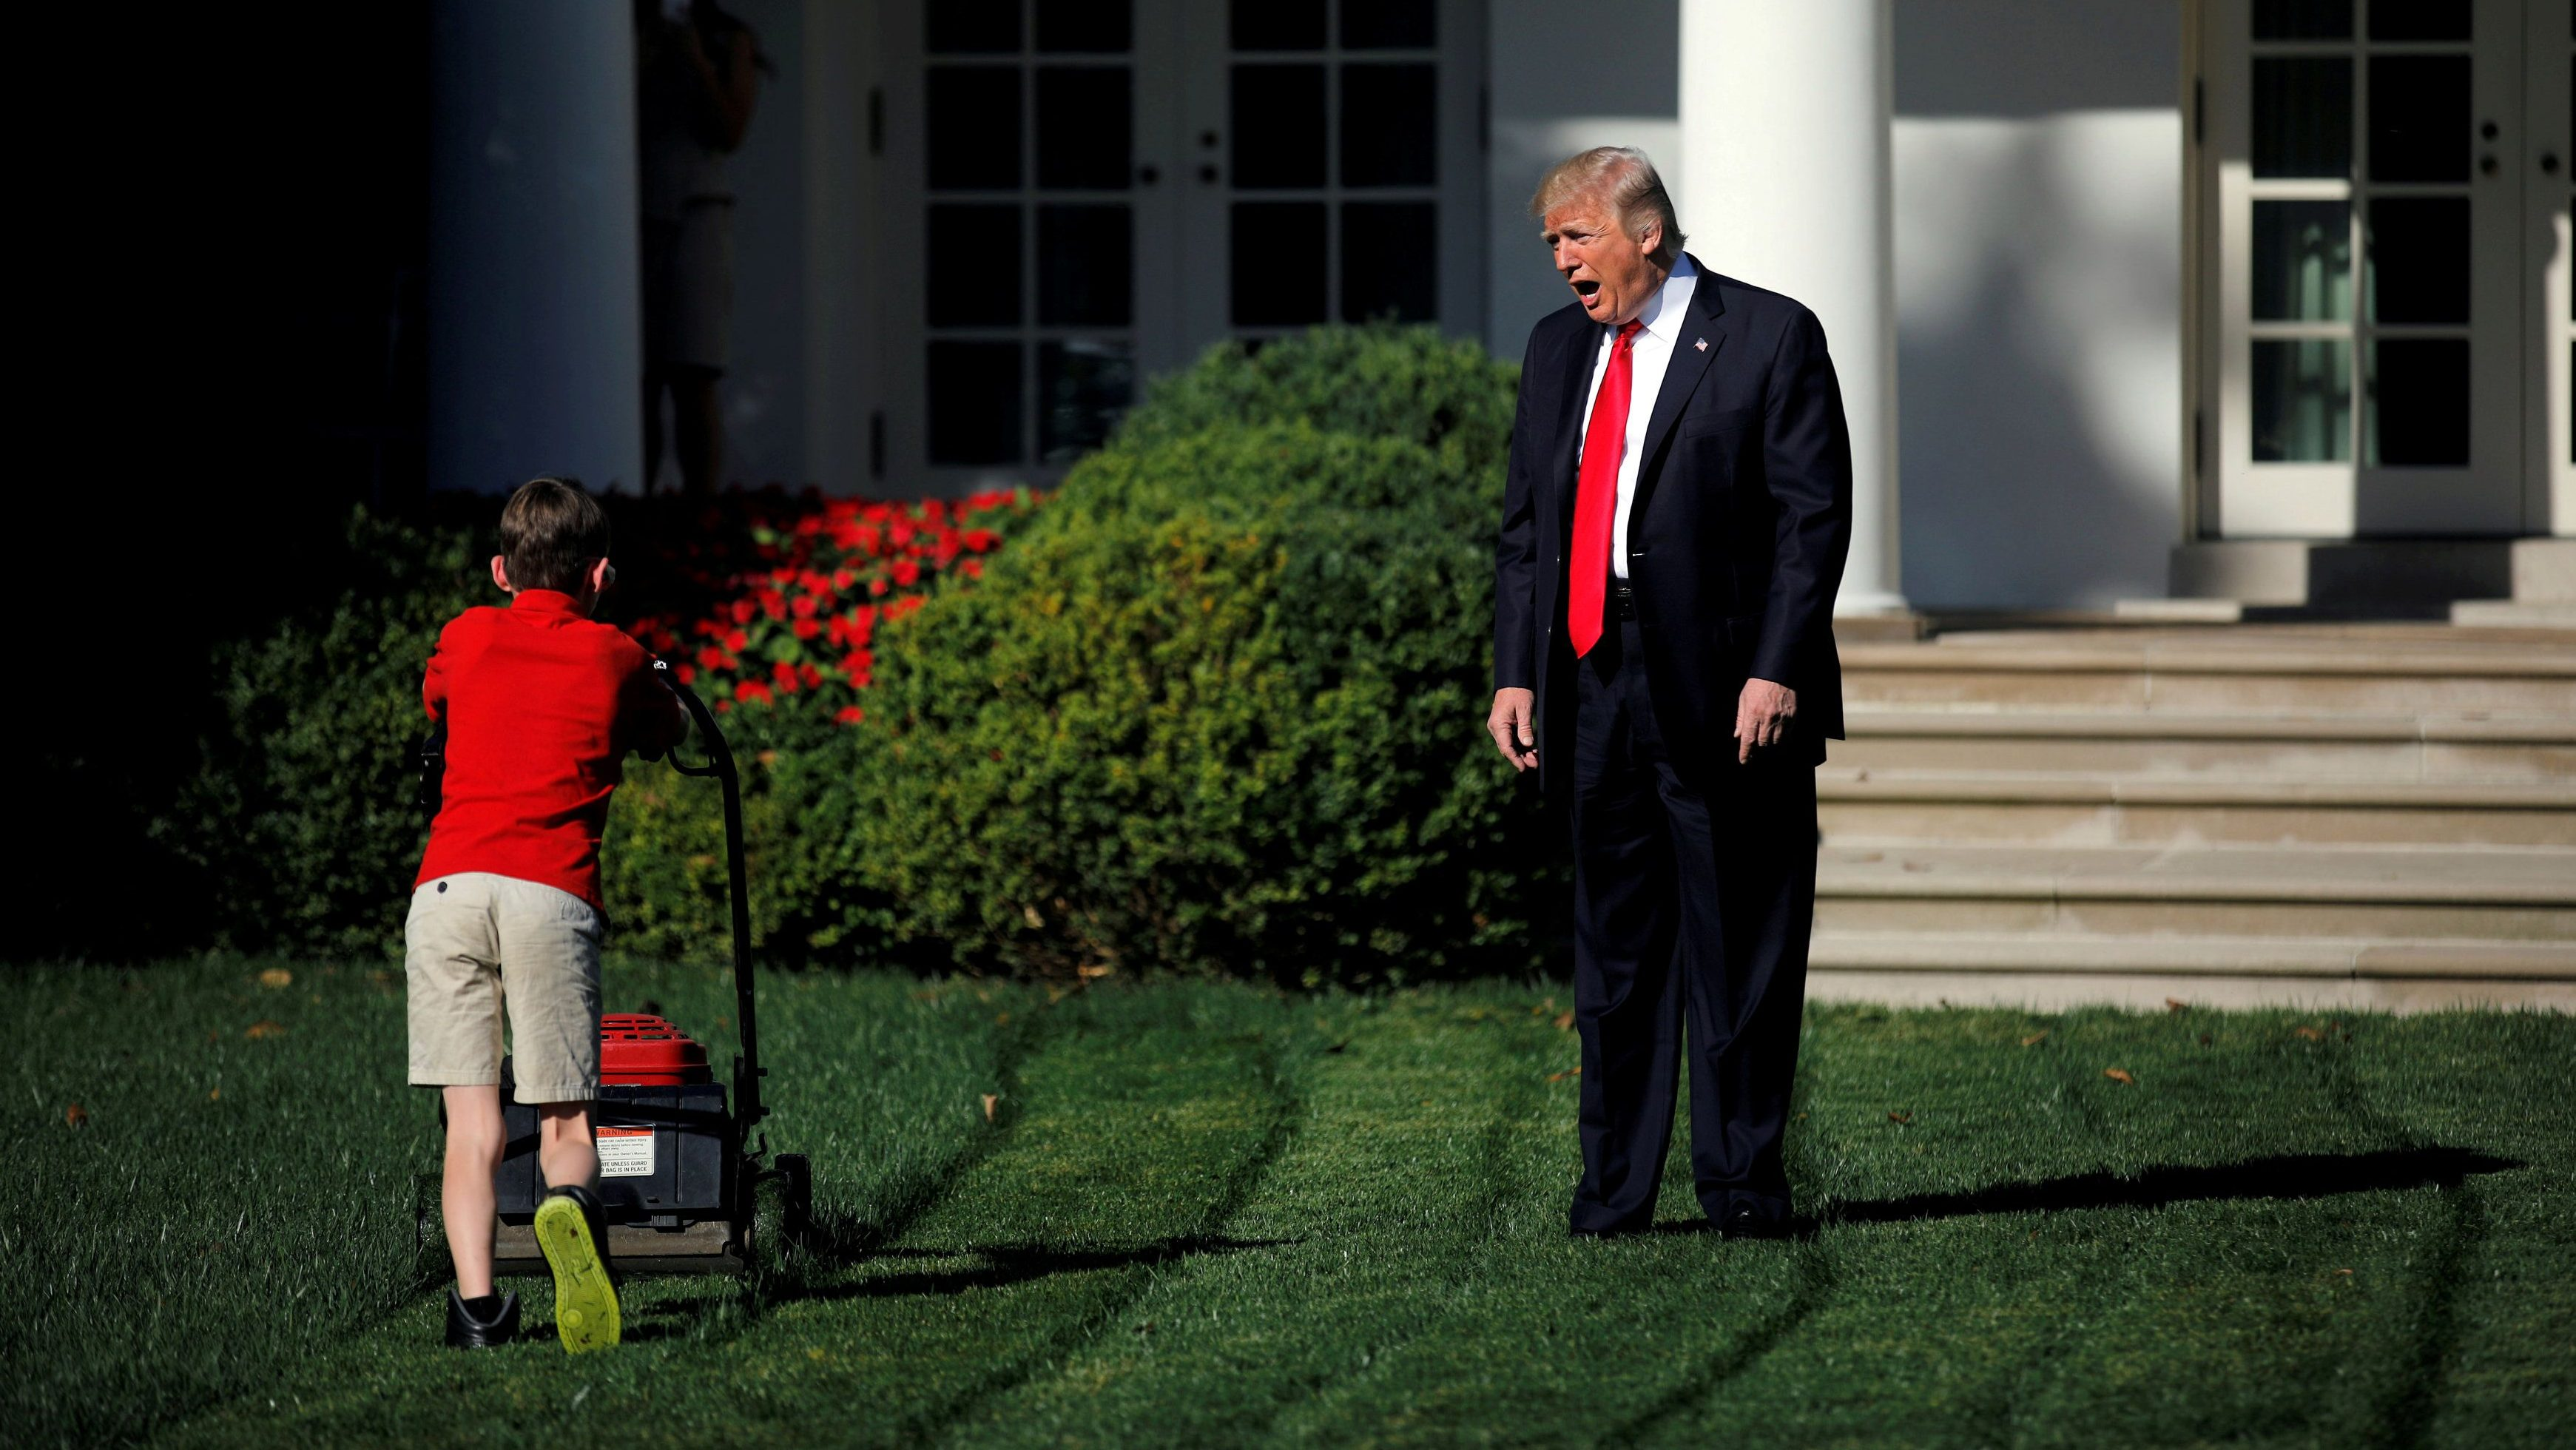 """U.S. President Donald Trump welcomes 11-year-old Frank Giaccio as he cuts the Rose Garden grass at the White House in Washington, U.S., September 15, 2017. Carlos Barria: """"Working in Washington, covering politics, I struggle with the rigid and tightly controlled images we're asked to take. But once in a while I get to witness a natural, unscripted moment. One morning, we were told the White House Pool would gather by the door of the Rose Garden for a photo opportunity. It was unscheduled so I didn't know what to expect. As it happened, the President was planning to surprise 11-year-old Frank Giaccio, who had written a letter to Trump offering to mow the White House lawn. Giaccio had been invited to work for a day at the White House alongside National Park Service staff. As we waited for Trump, I saw that Giaccio was very focused on this job and not paying much attention to the group of journalists, photographers and cameramen milling around the garden. Suddenly, from the other side of a hedge, wearing his signature, long red tie, President Trump appeared, dropping in as if this were an episode of The Apprentice. He walked towards Giaccio to say hi and pose for a picture. He began shouting to the boy above the noise of the lawnmower, but it was too loud. Giaccio was so focused on his job that he didn't notice Trump. He walked right past, pushing the machine. Trump paused for a second and walked to the end of the lawn to talk to Giaccio, but again, he didn't stop mowing. He kept going until his father rushed onto the scene to grab his attention, and he finally stopped to greet Trump. The image of Trump shouting at a kid who is mowing his lawn might have many interpretations in today's politically polarized United States. But for me it was just a kid who loved what he was doing, to the point he almost appeared to ignore the President."""" REUTERS/Carlos Barria/File photo SEARCH """"POY STORY"""" FOR THIS STORY. SEARCH """"REUTERS POY"""" FOR ALL BEST OF 2017 PACKAGES. - RC1DE25540A0"""